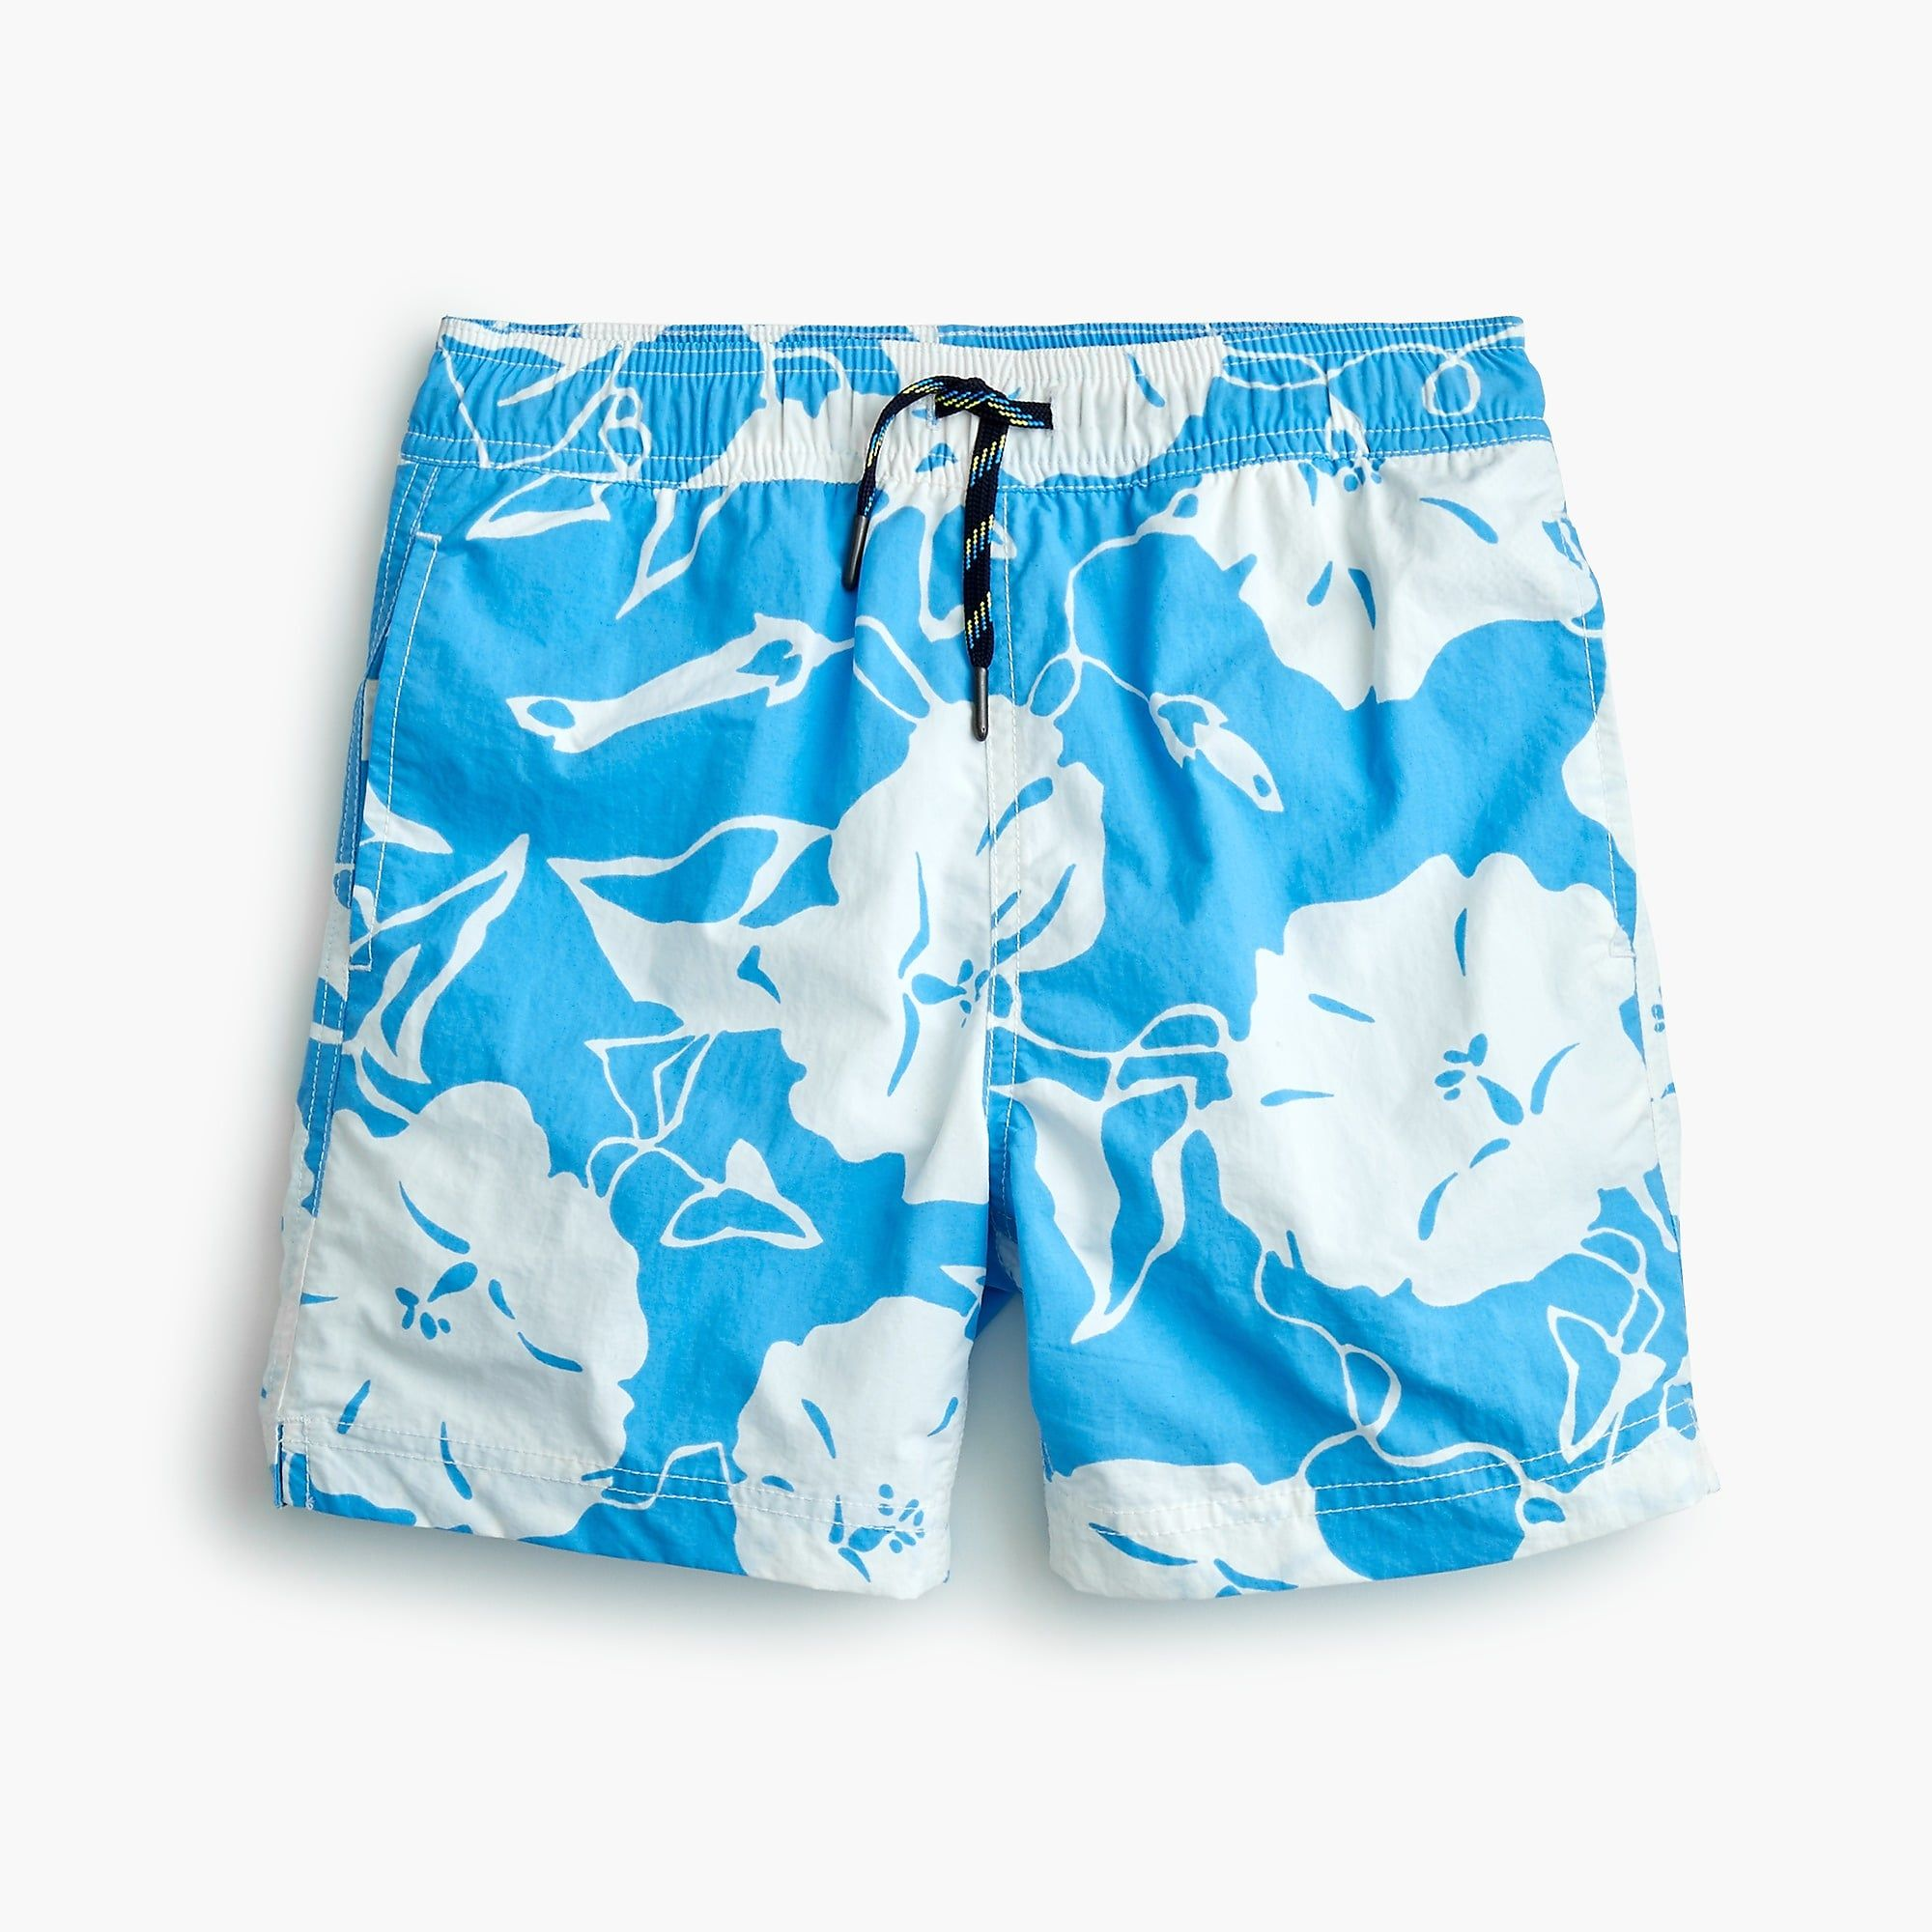 4a0652582d529 Shop the Boys' swim trunk in poppy print at J.Crew and see the entire  selection of Boys' Swimwear. Find Boys' clothing & accessories at J.Crew.